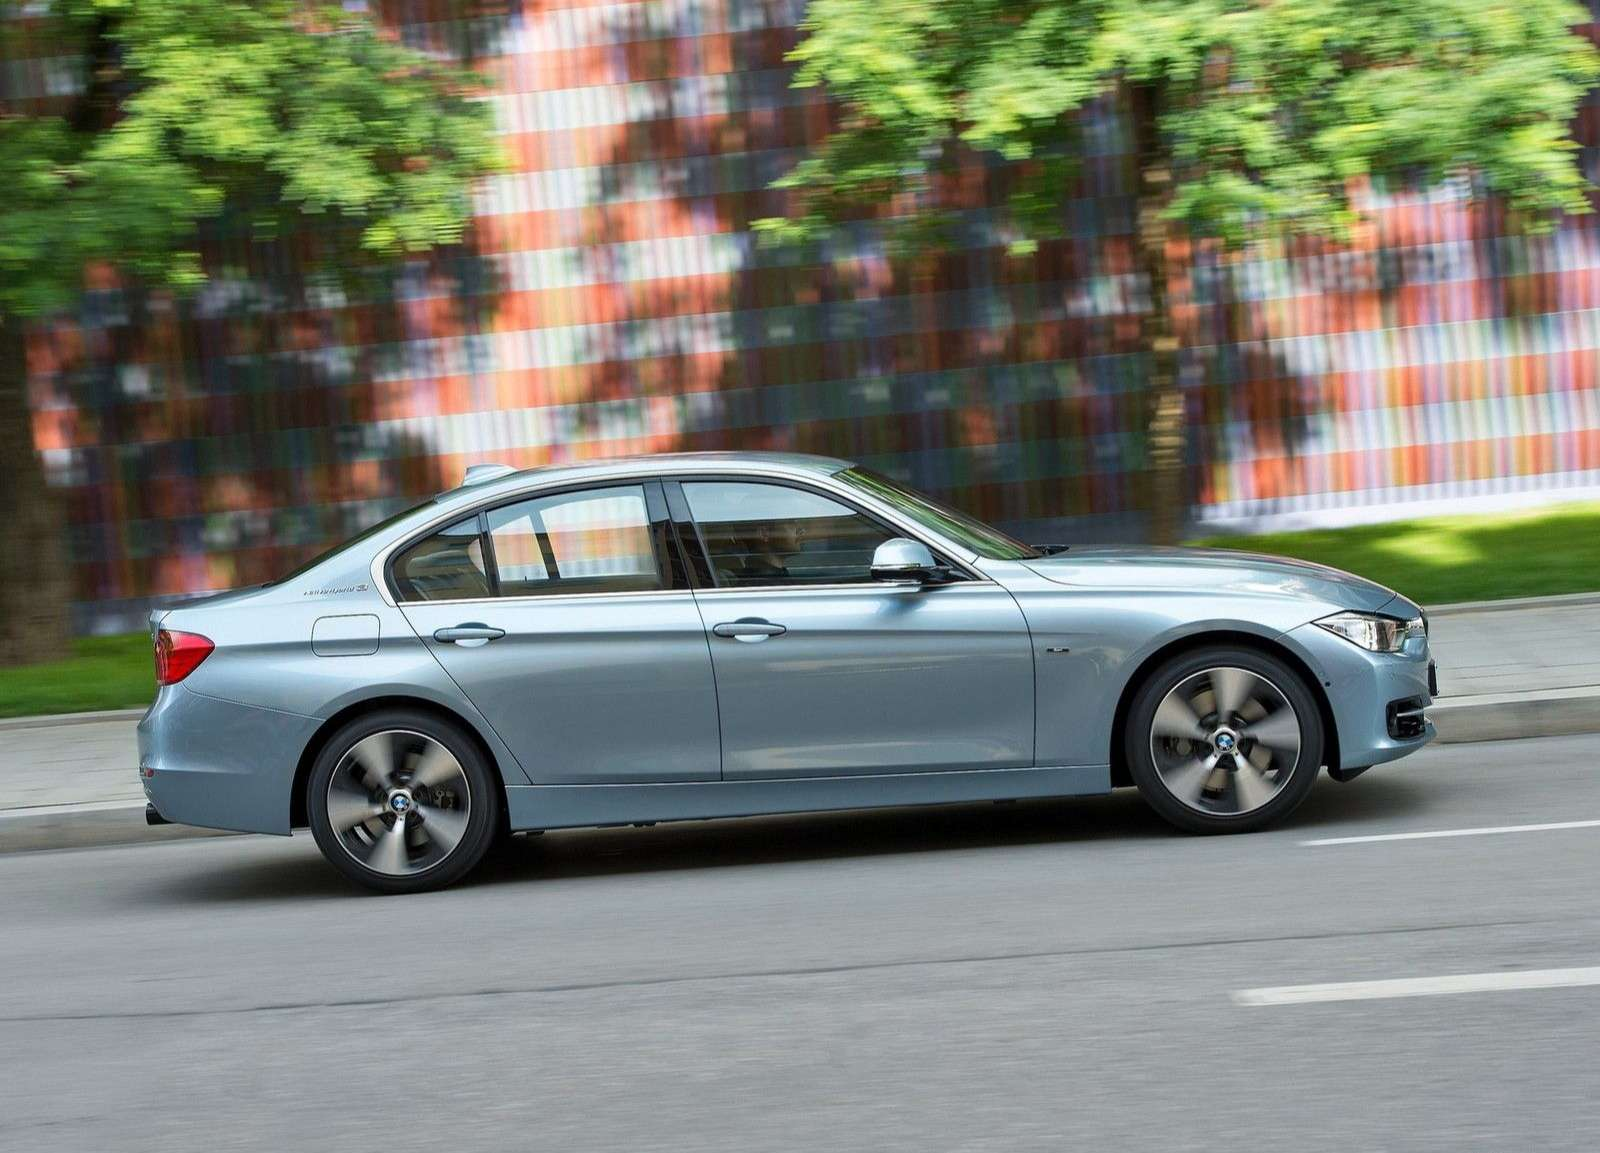 BMW 3 Series Wallpaper 014